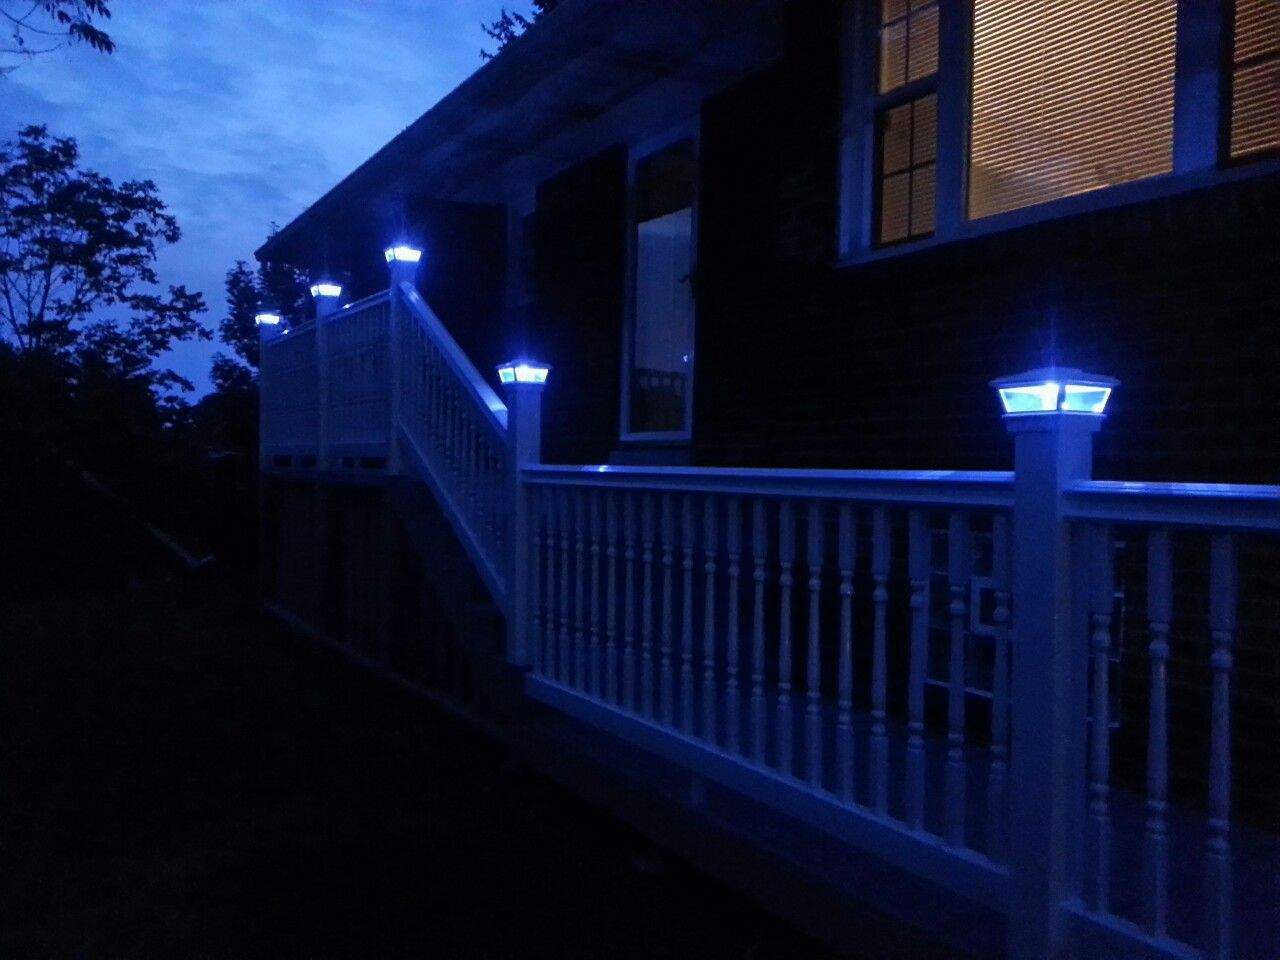 So These Are Solar Lights From Lowes On Top Of A Deck